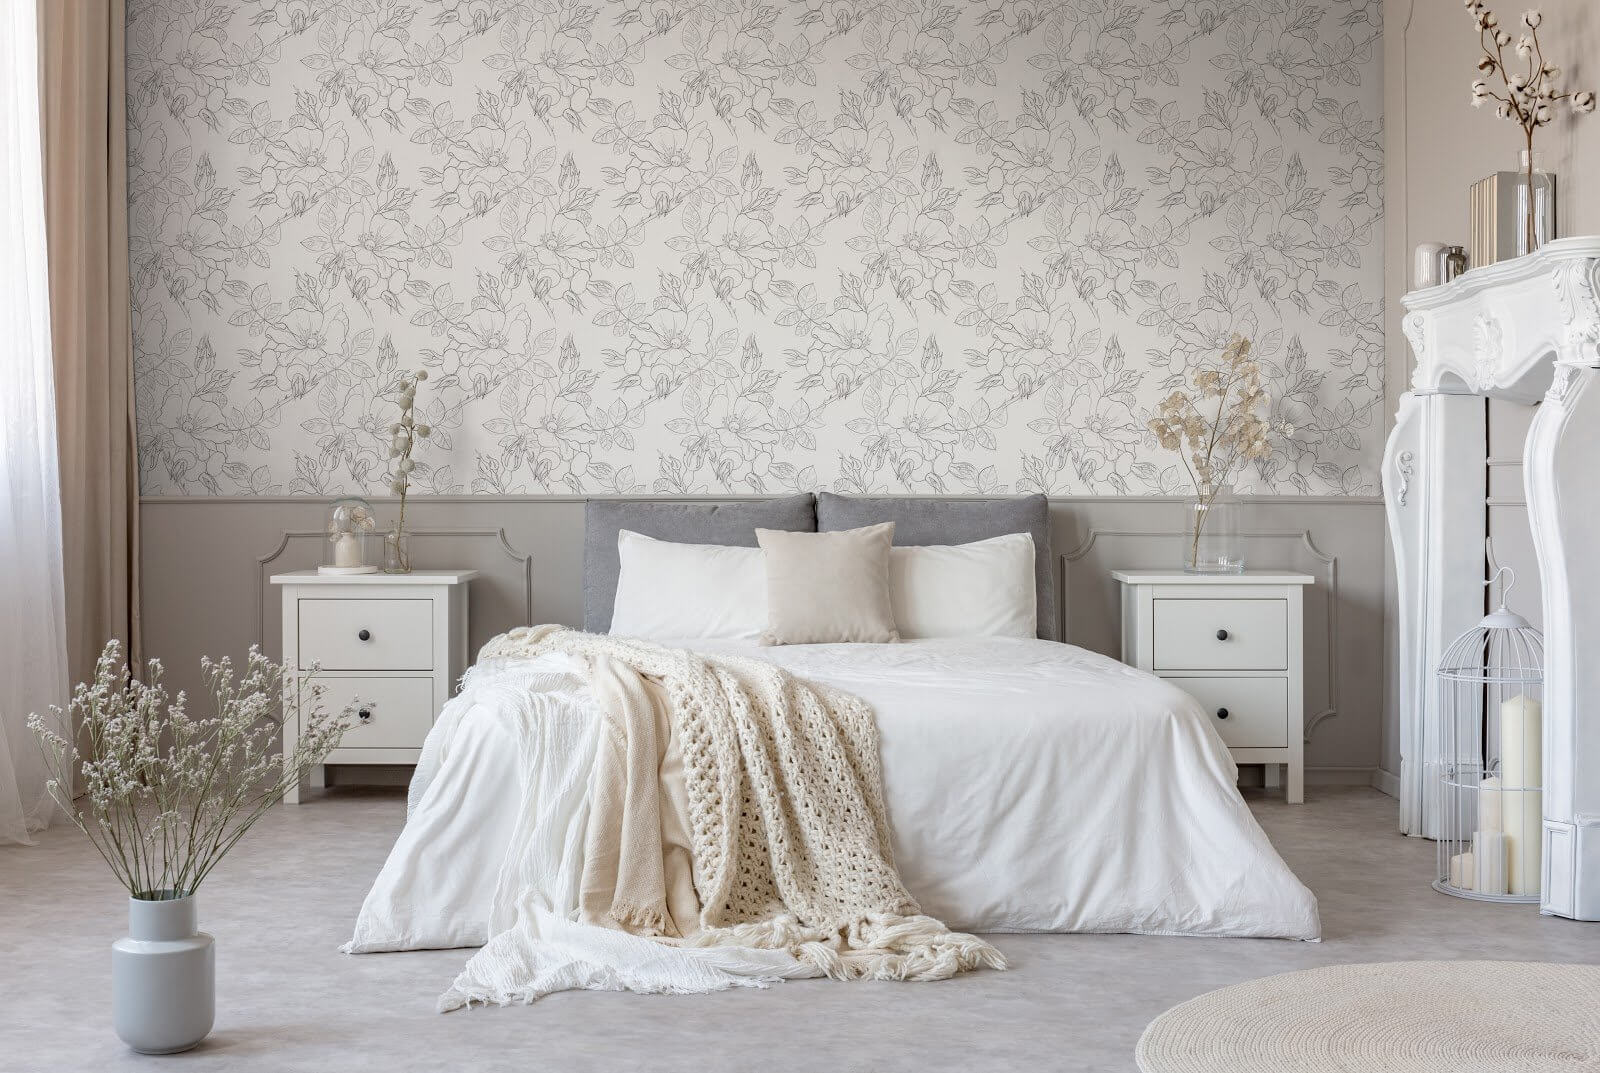 Different shades of gray create a simple bedroom look.